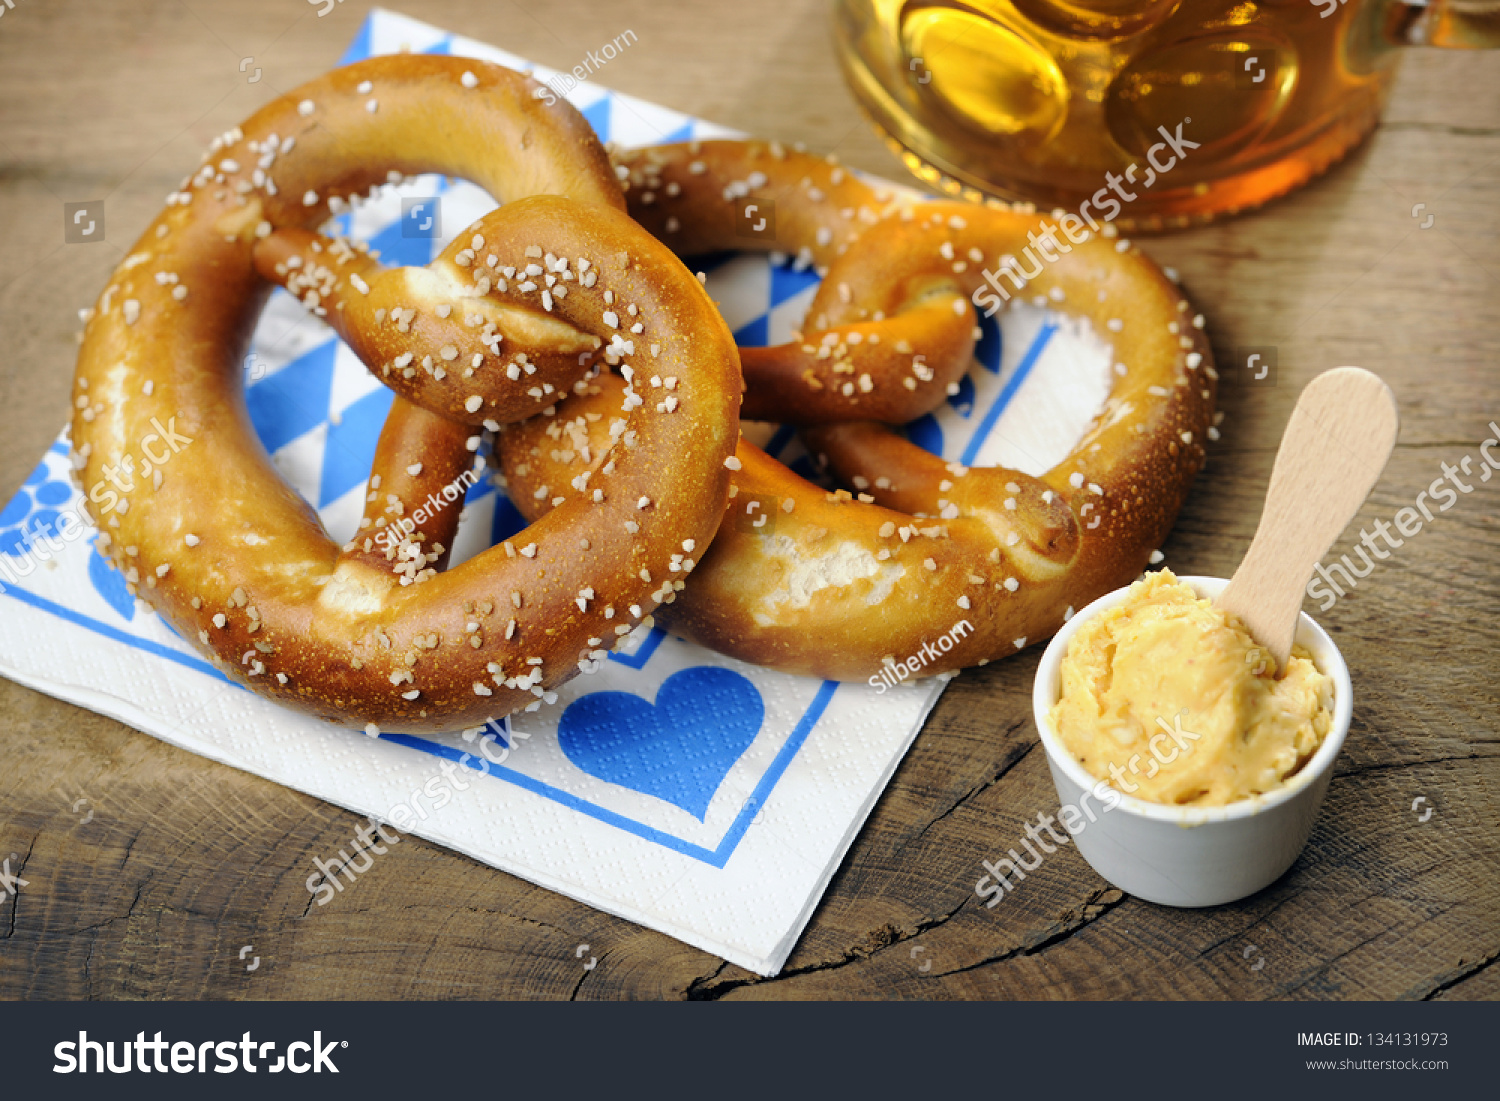 Image result for traditional german pretzel